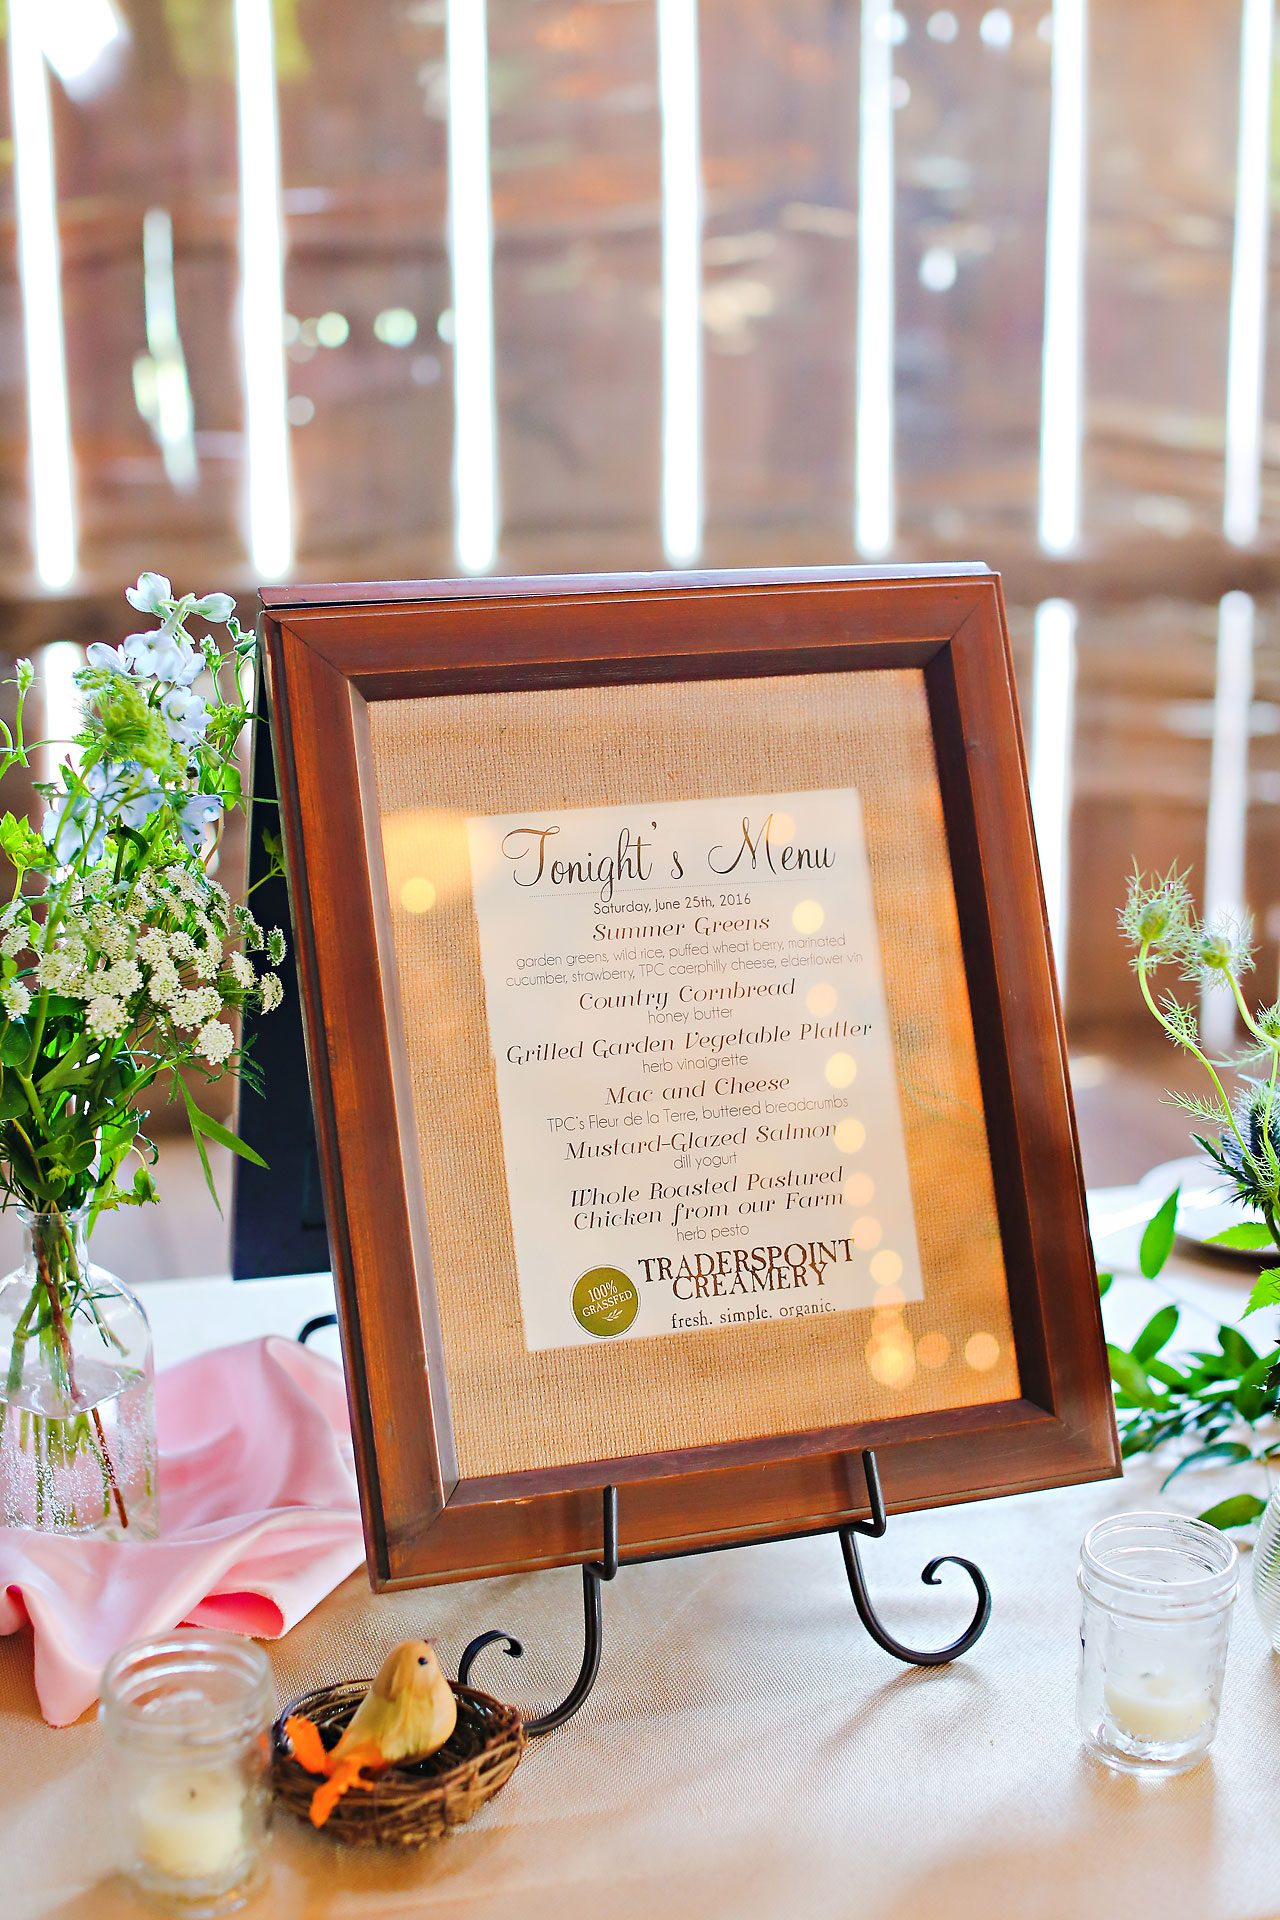 Nikki Weston Traders Point Creamery Zionsville Wedding 304